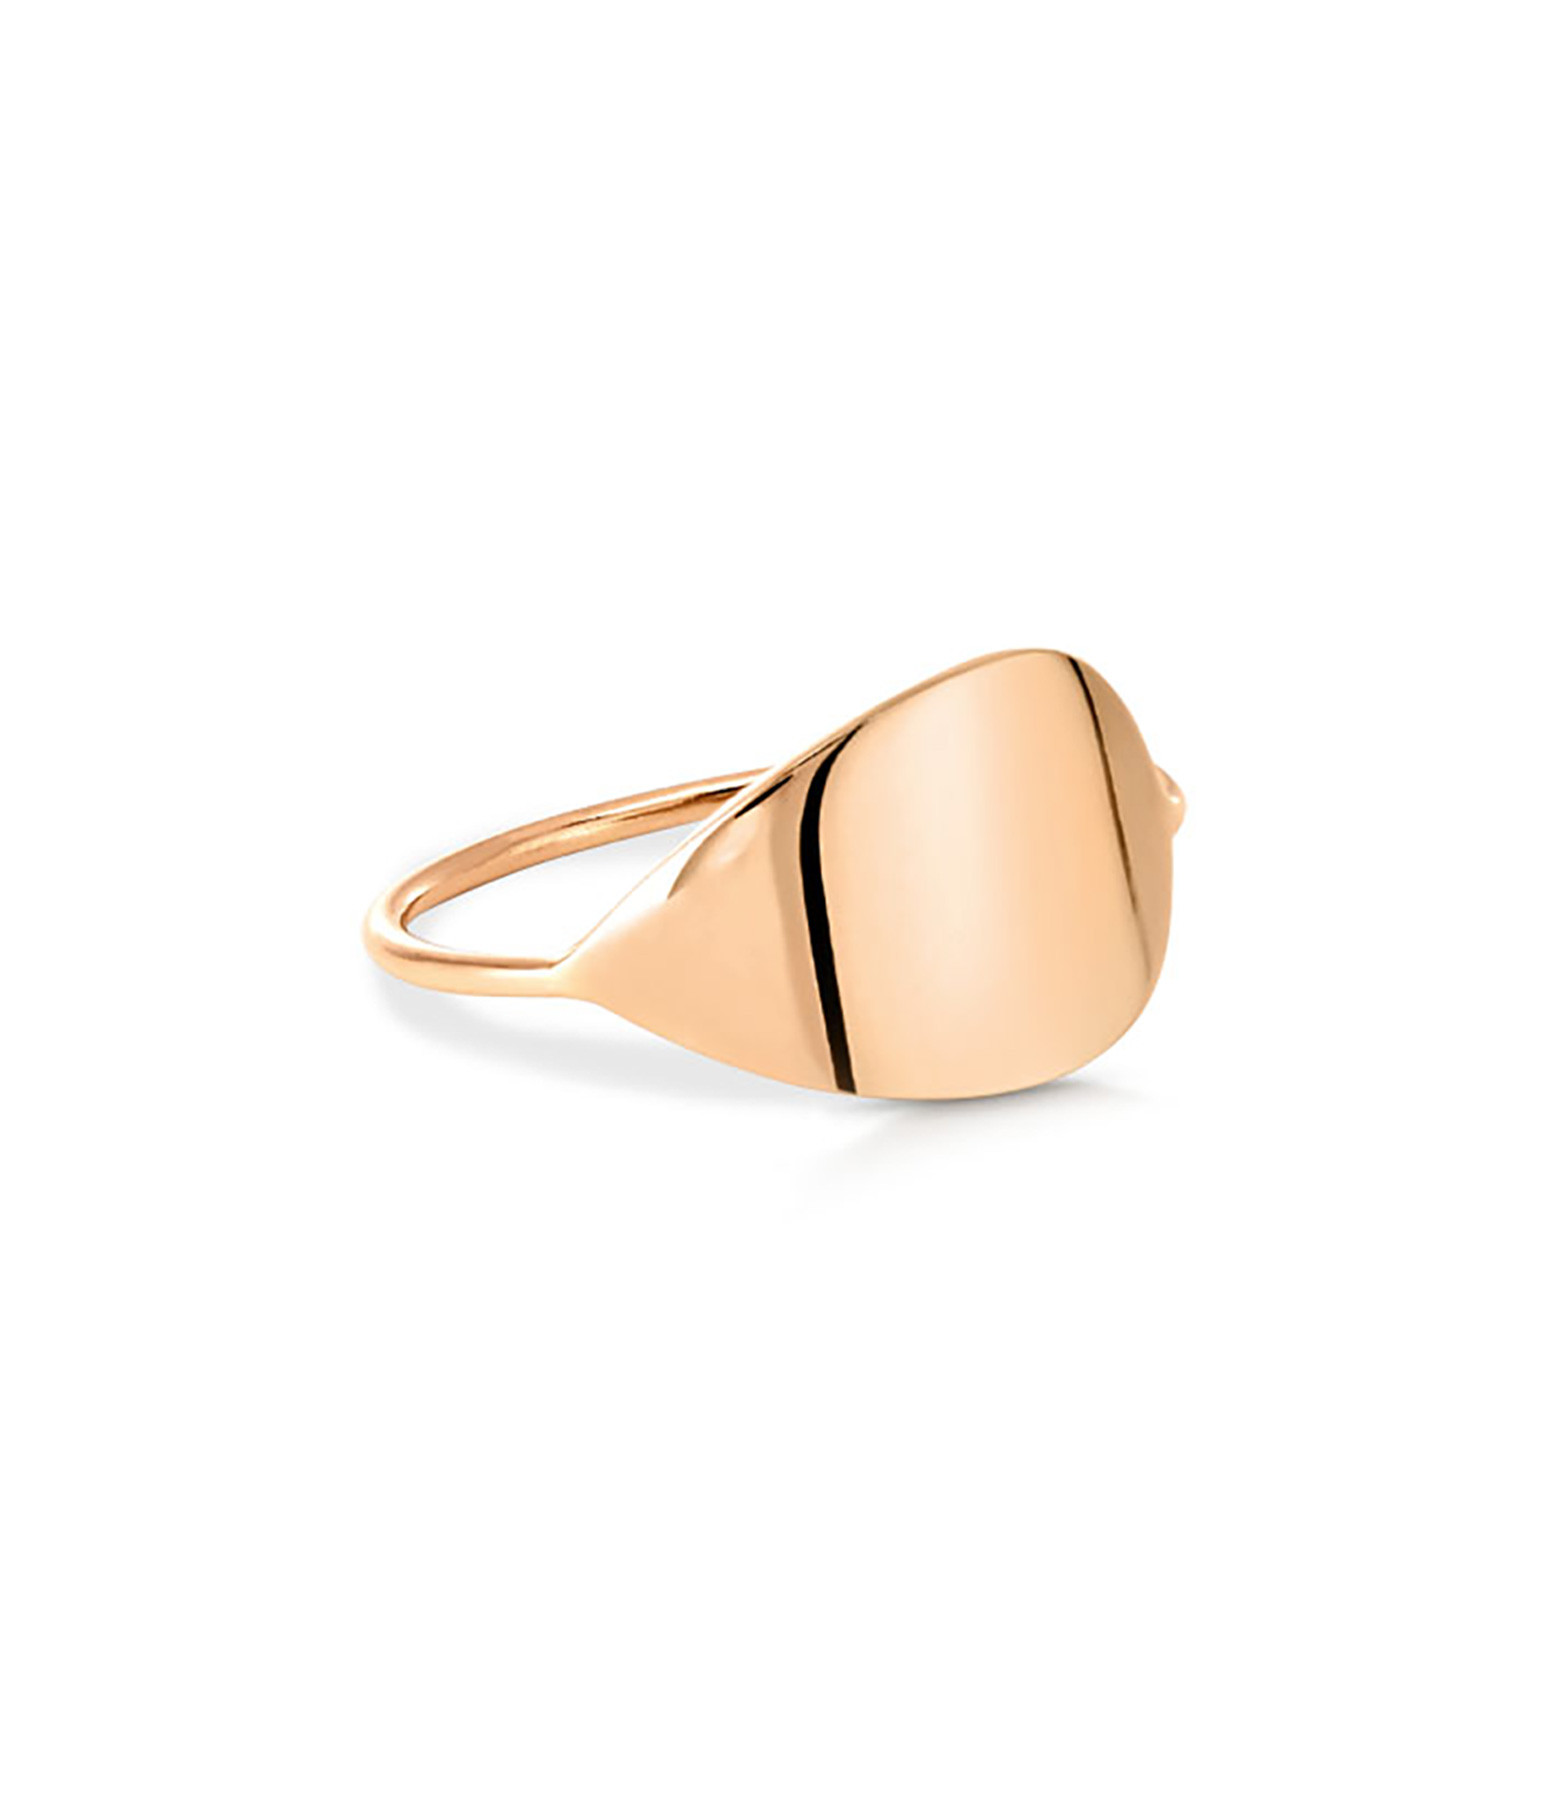 GINETTE NY - Bague Bliss Or Rose